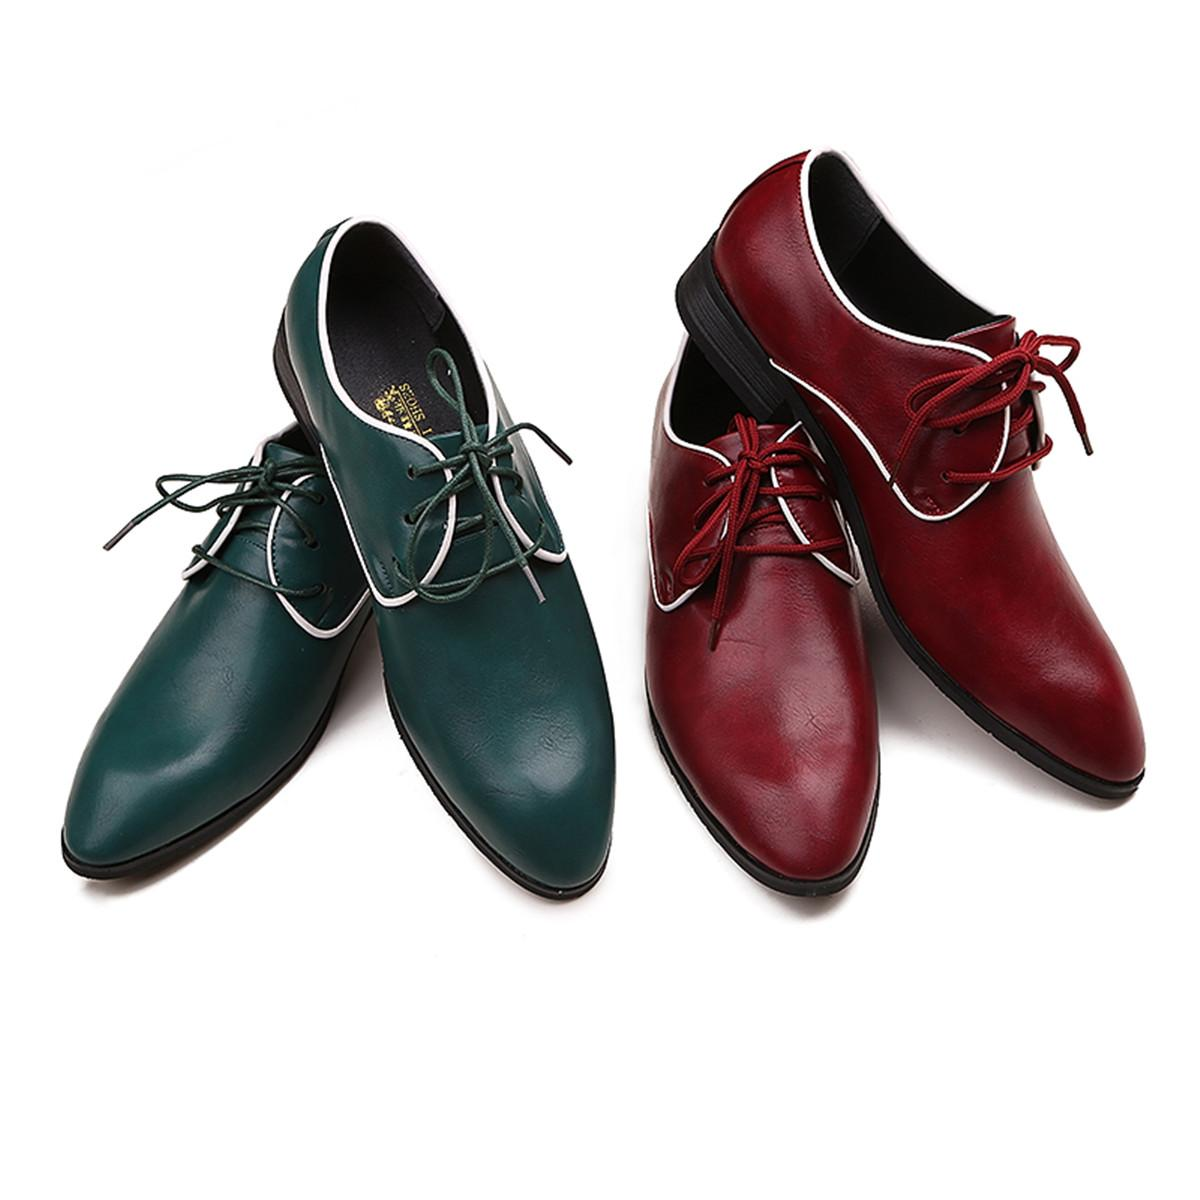 Burgundy Green Pu Leather Shoes Men S Wedding Shoes Lace